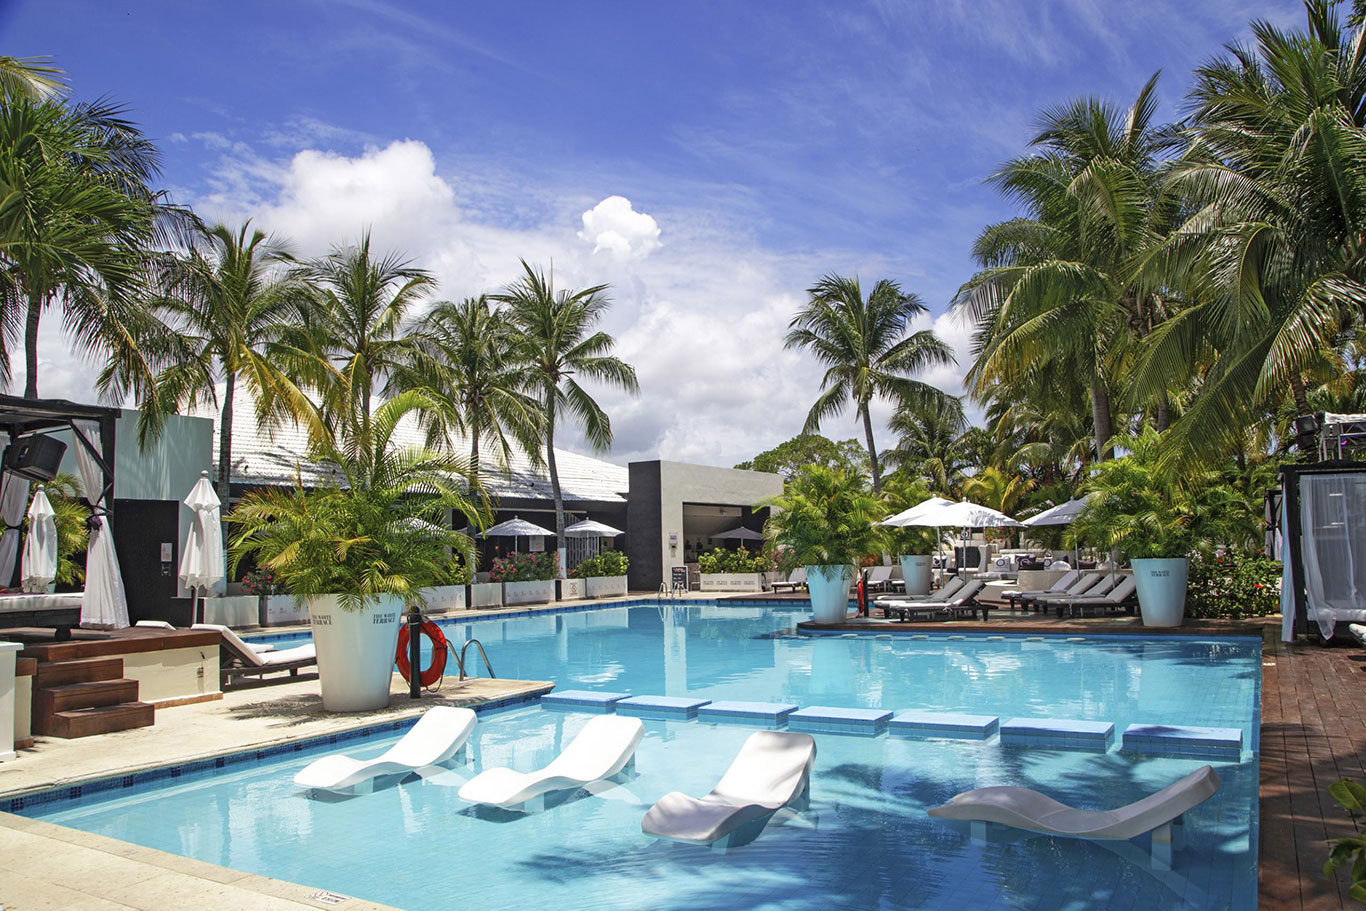 Smart Cancun By Oasis Oasis Smart Cancun